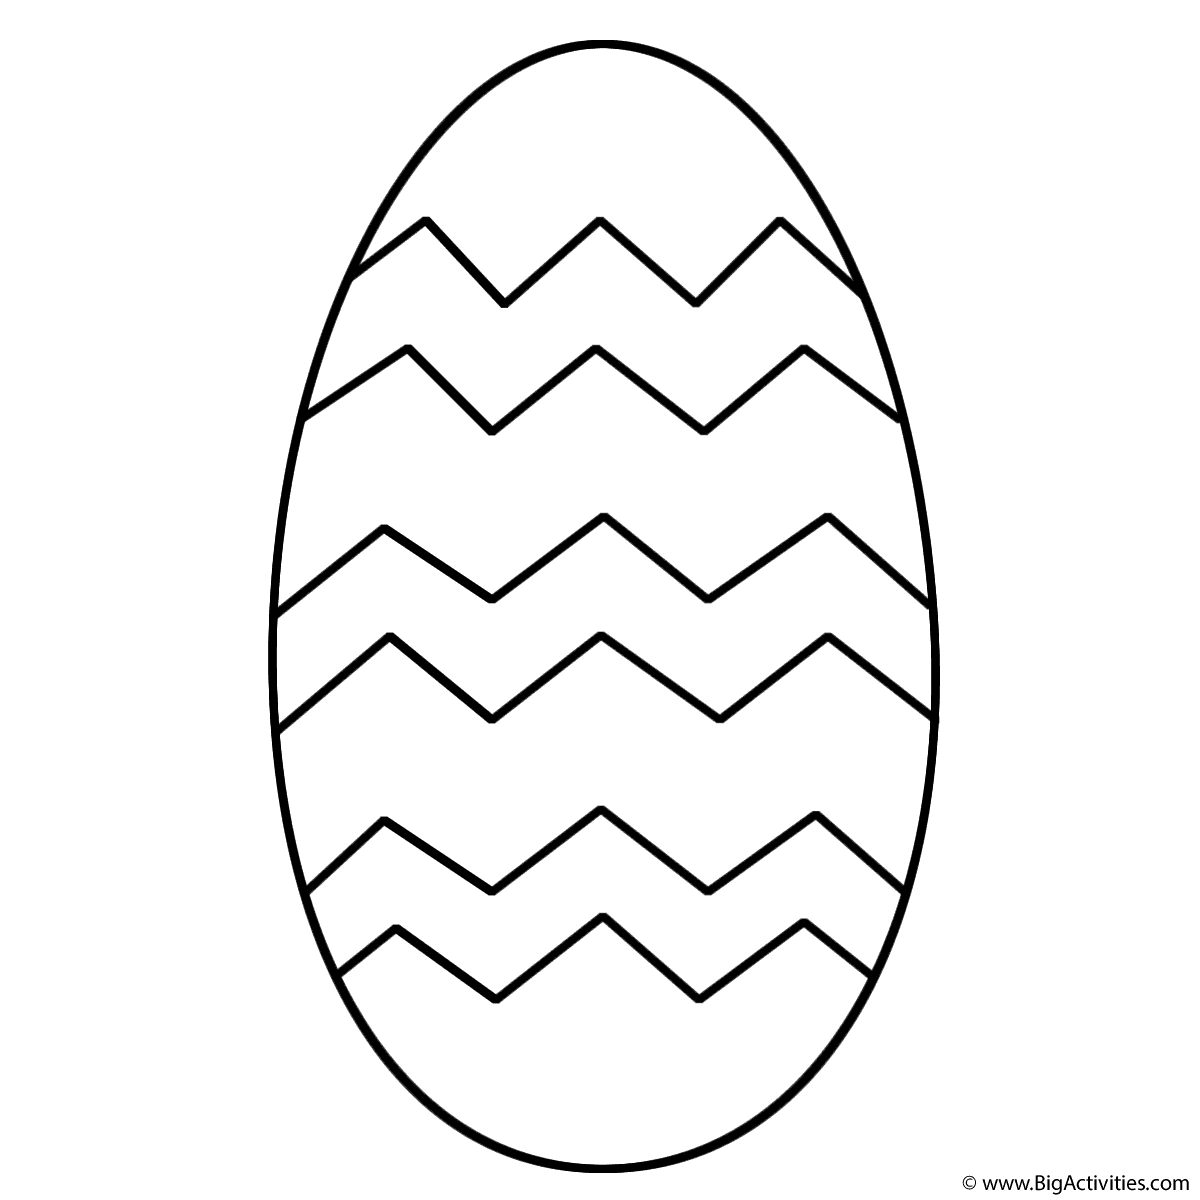 Easter Egg With Patterns